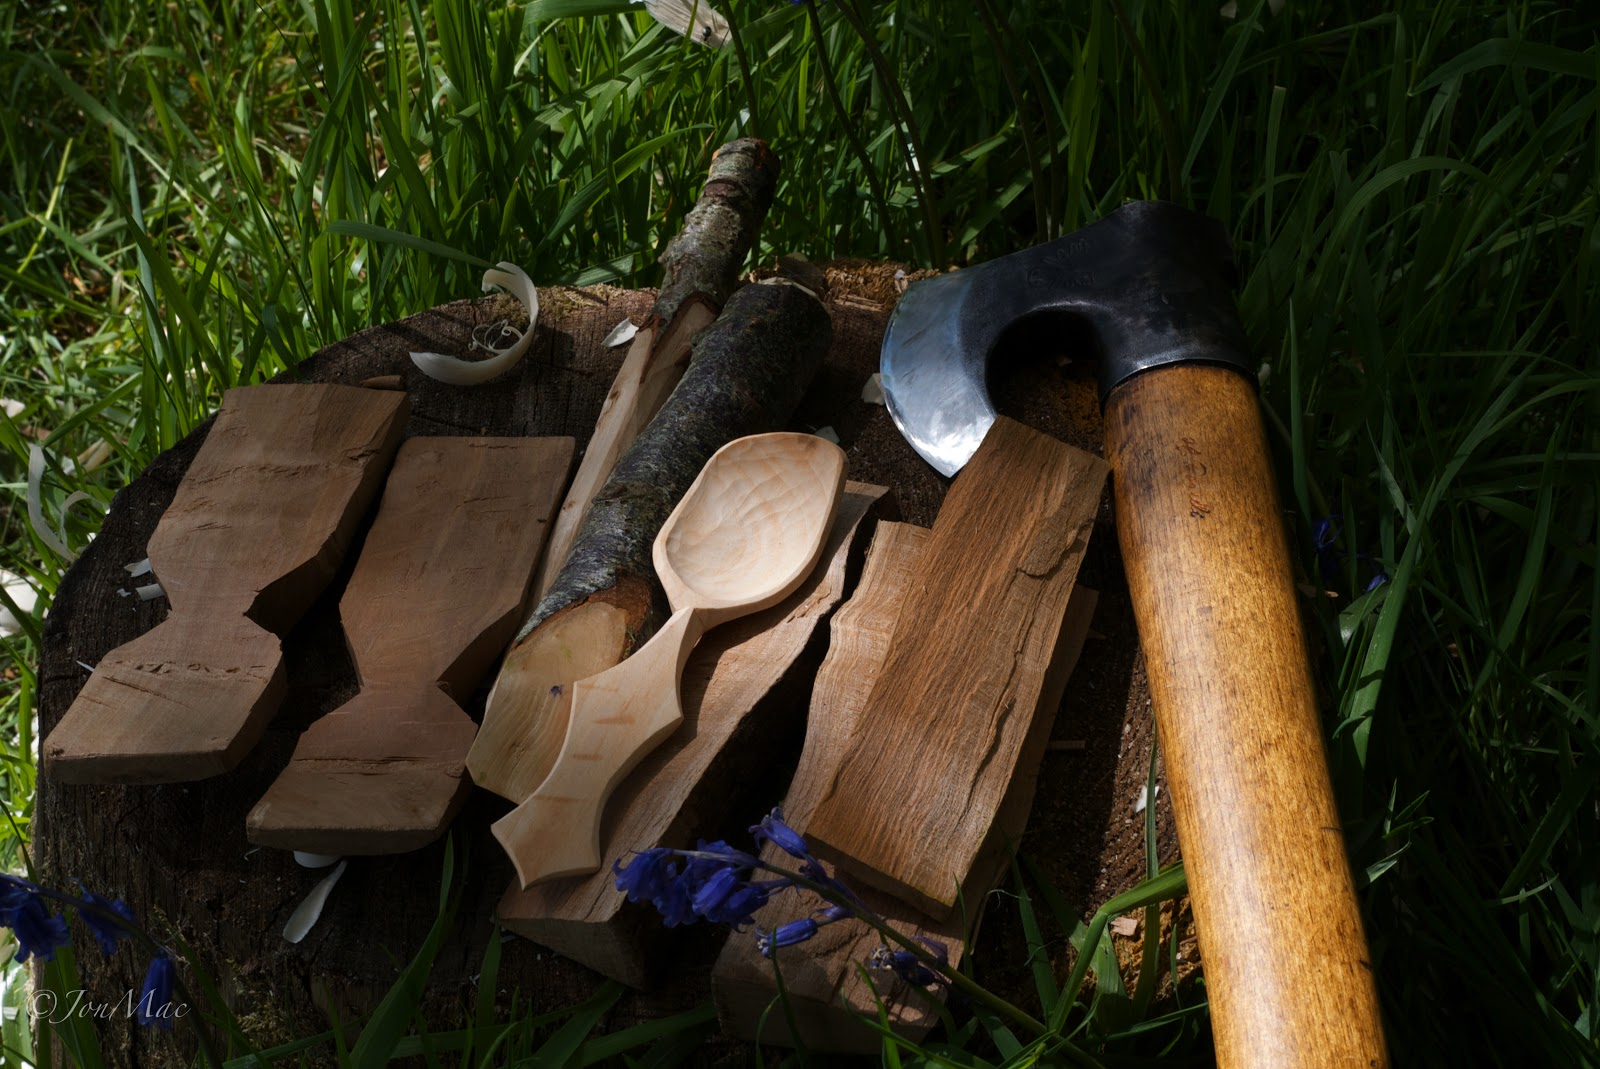 spoon blank+roselli axe+spoon carving+spoon whittling